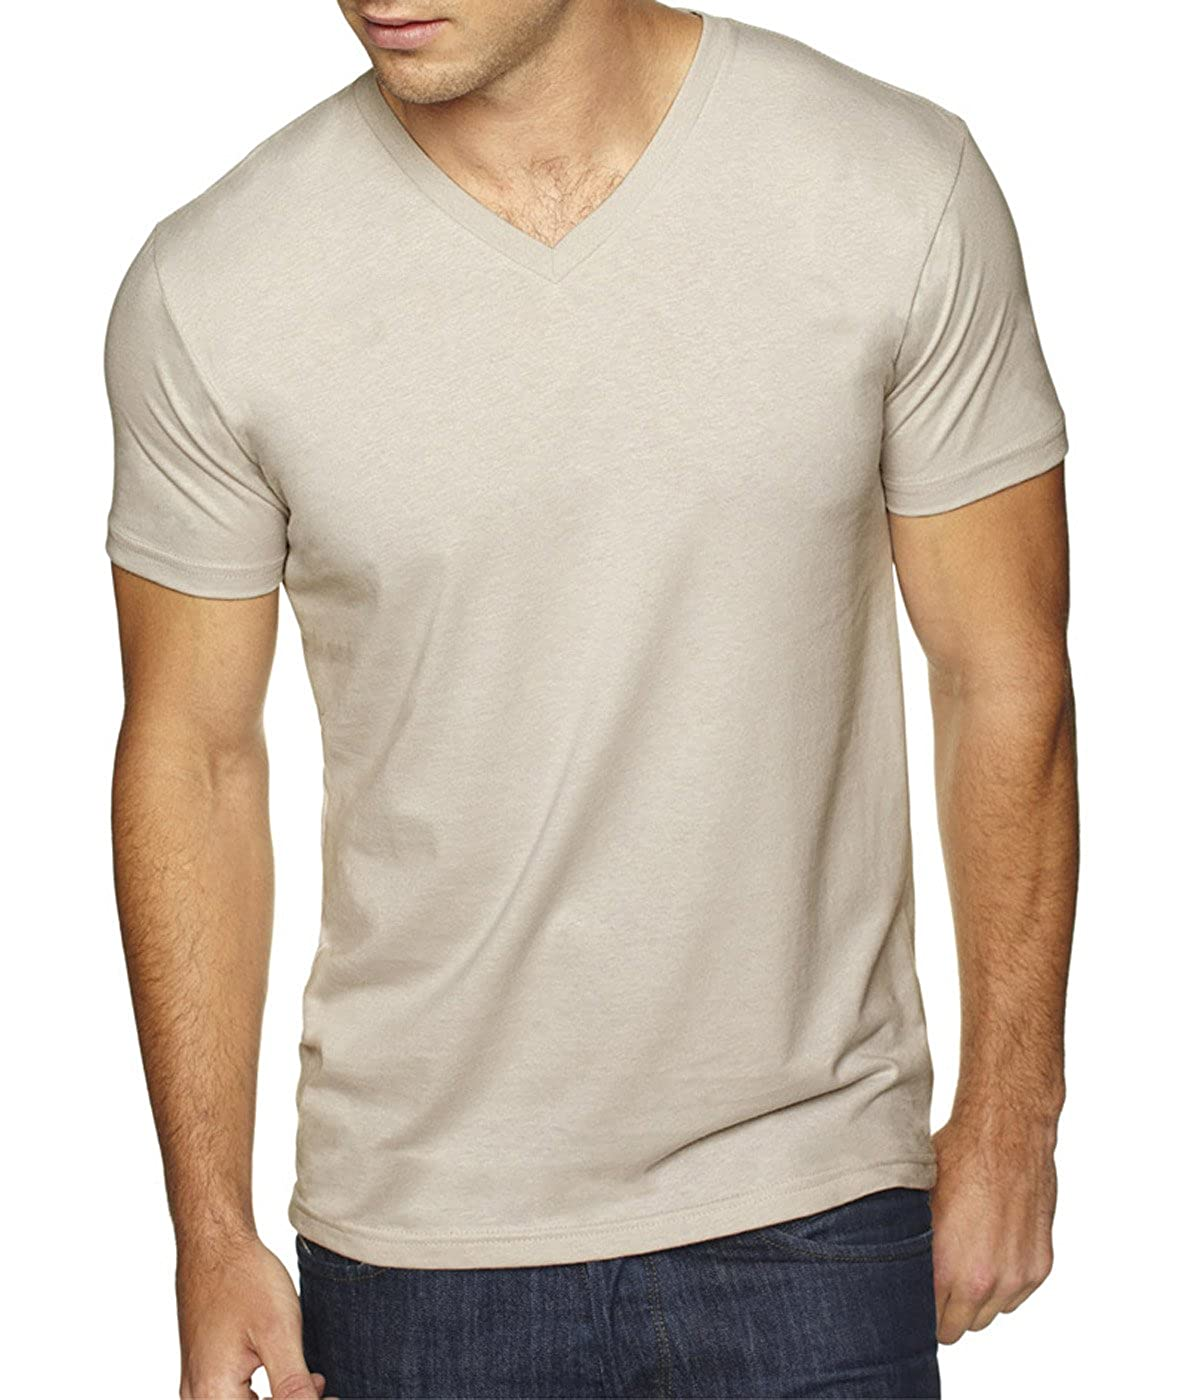 Sand - X-Large Cardinal Next Level Apparel 6440 Mens Premium Fitted Sueded V-Neck Tee -2 Pack 2 Shirts